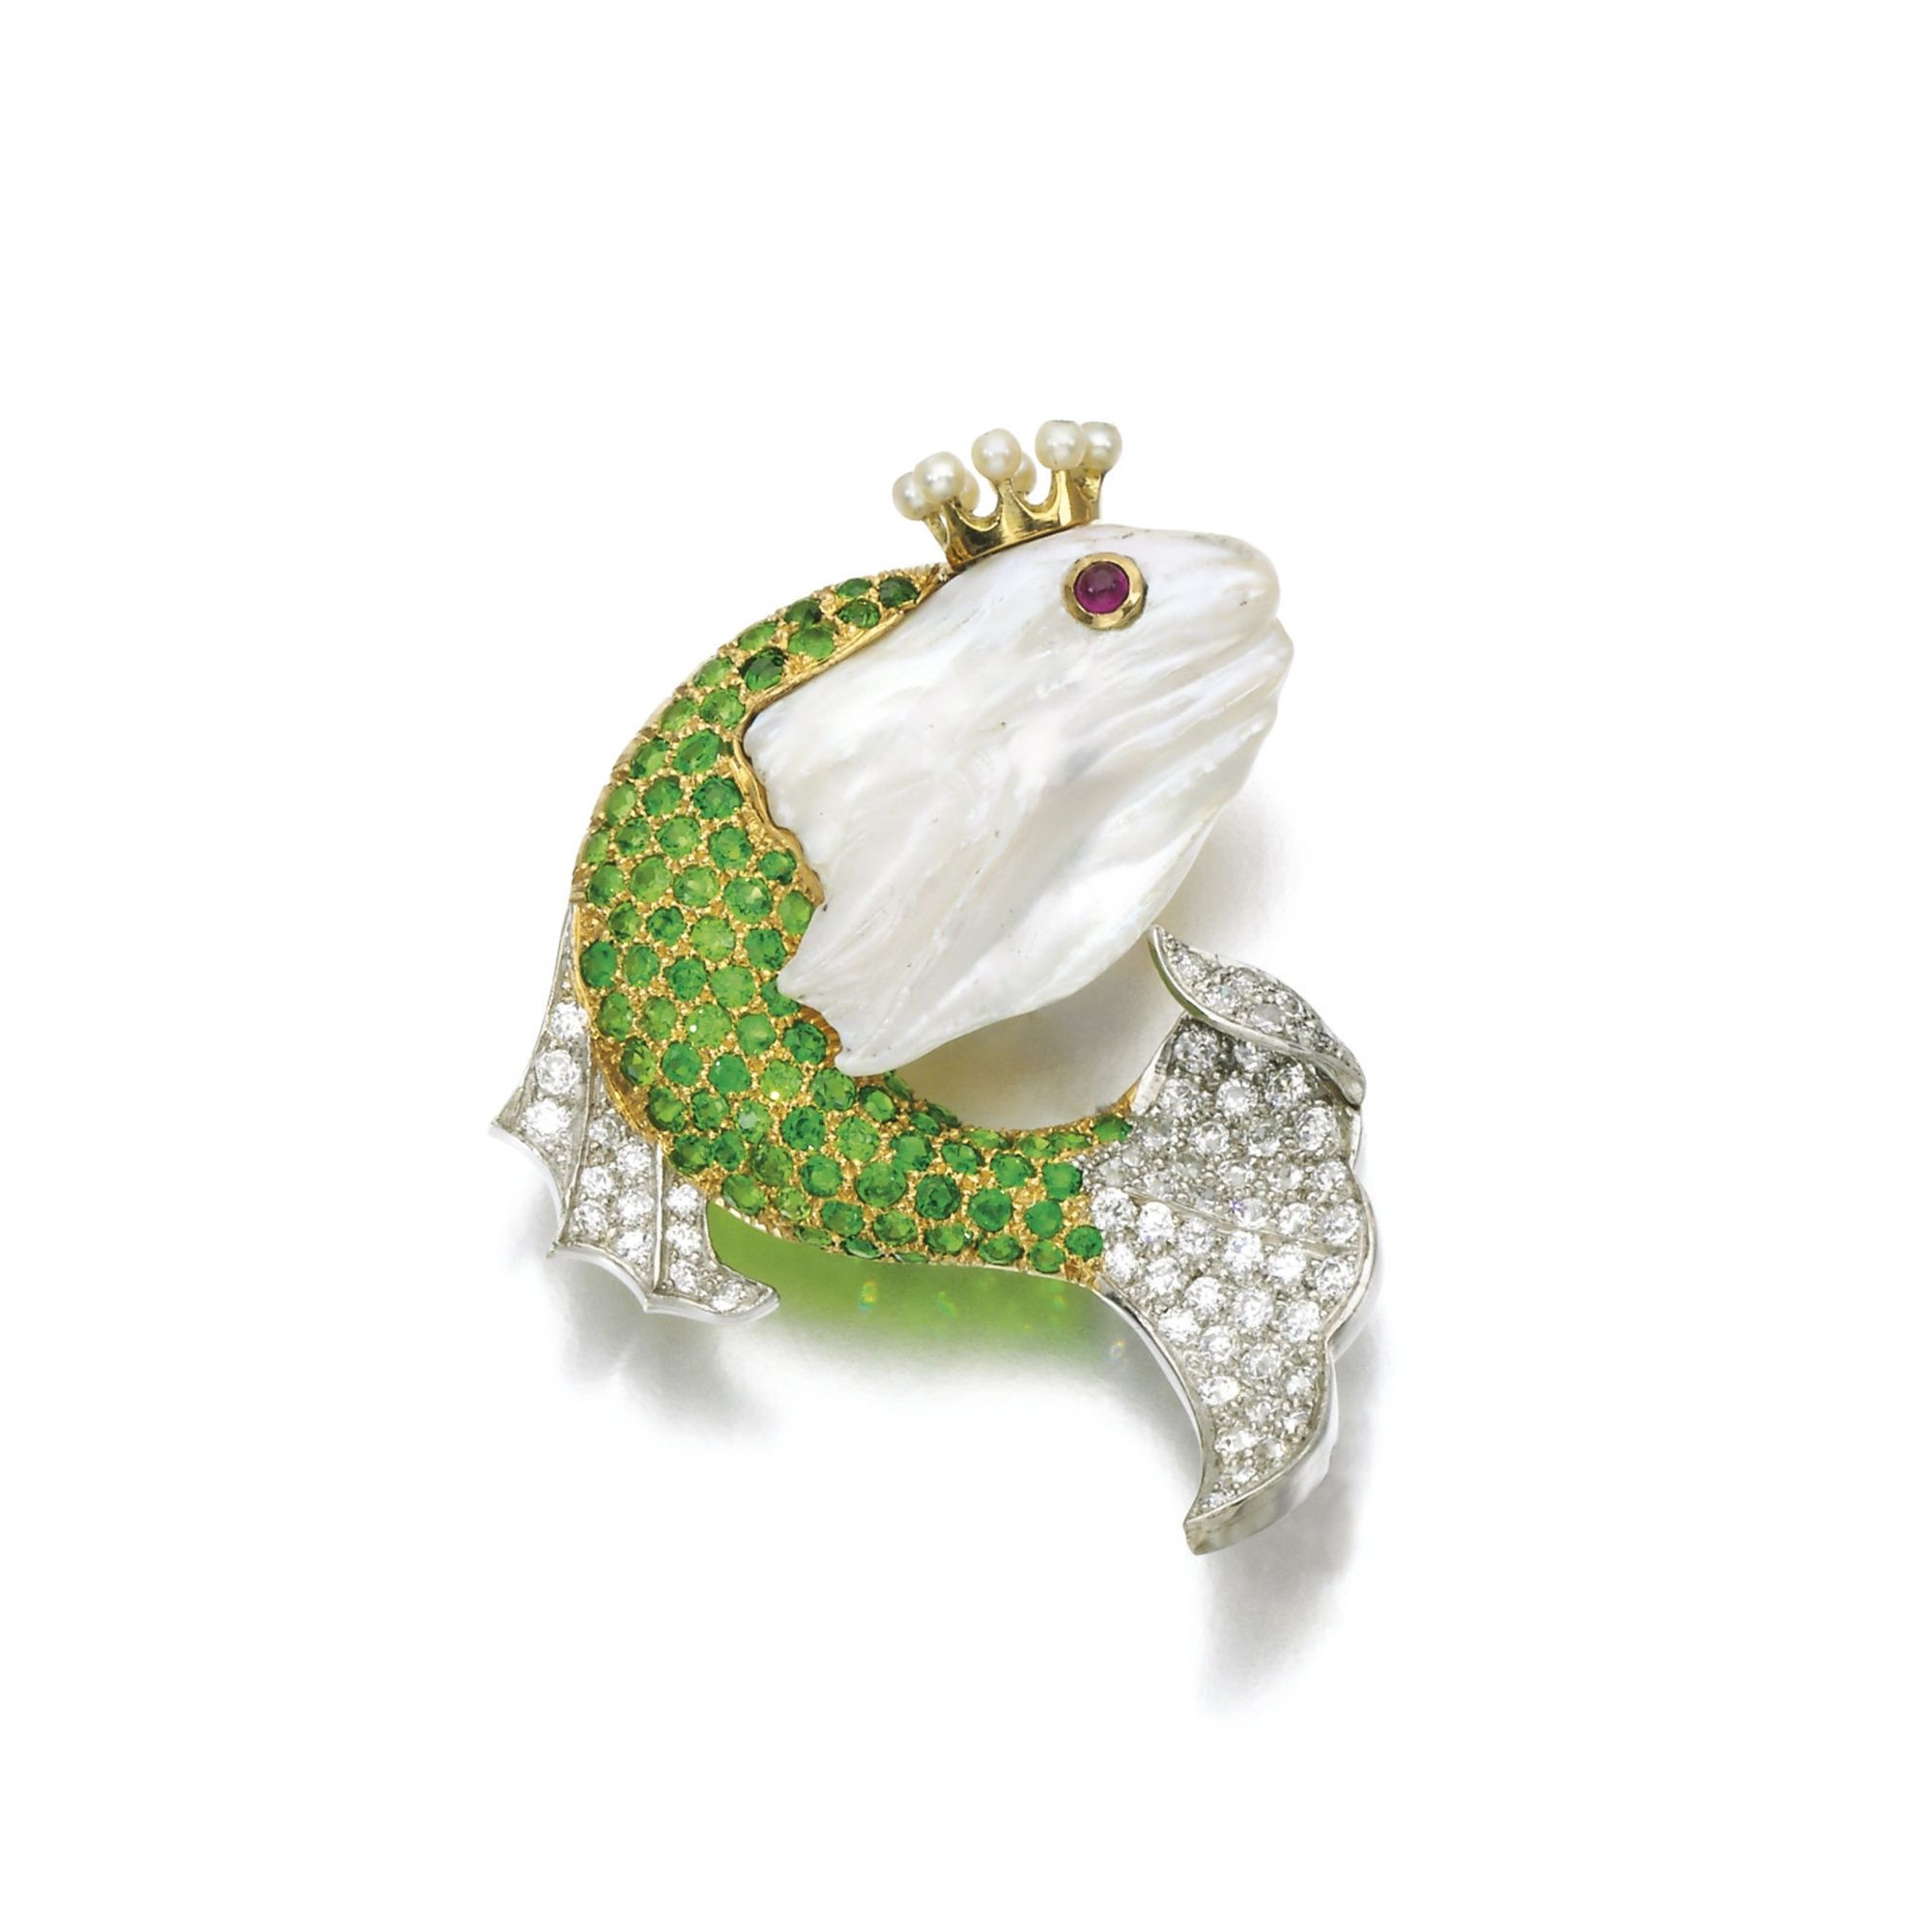 Freshwater pearl, demantoid garnet, ruby and diamond brooch Designed as a fish, the body set with circular-cut demantoid garnets and diamonds, the head set with a freshwater pearl with cabochon ruby eye and seed pearl coronet.